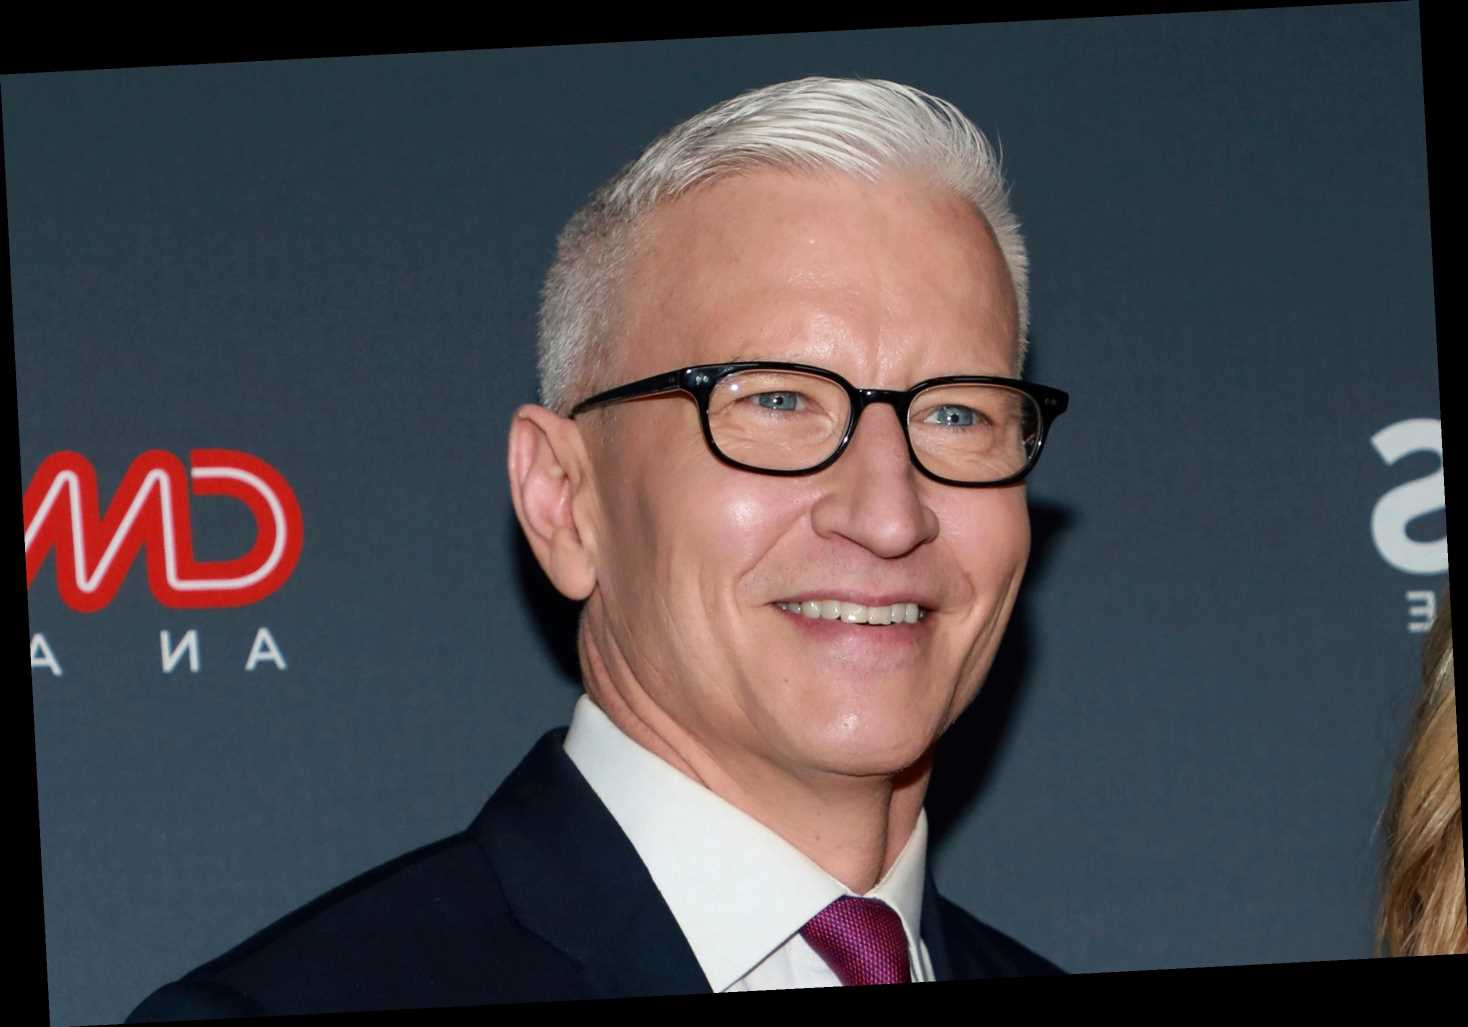 Anderson Cooper shockingly brands Trump as 'dictator' who will 'settle scores' anyone who doesn't back him